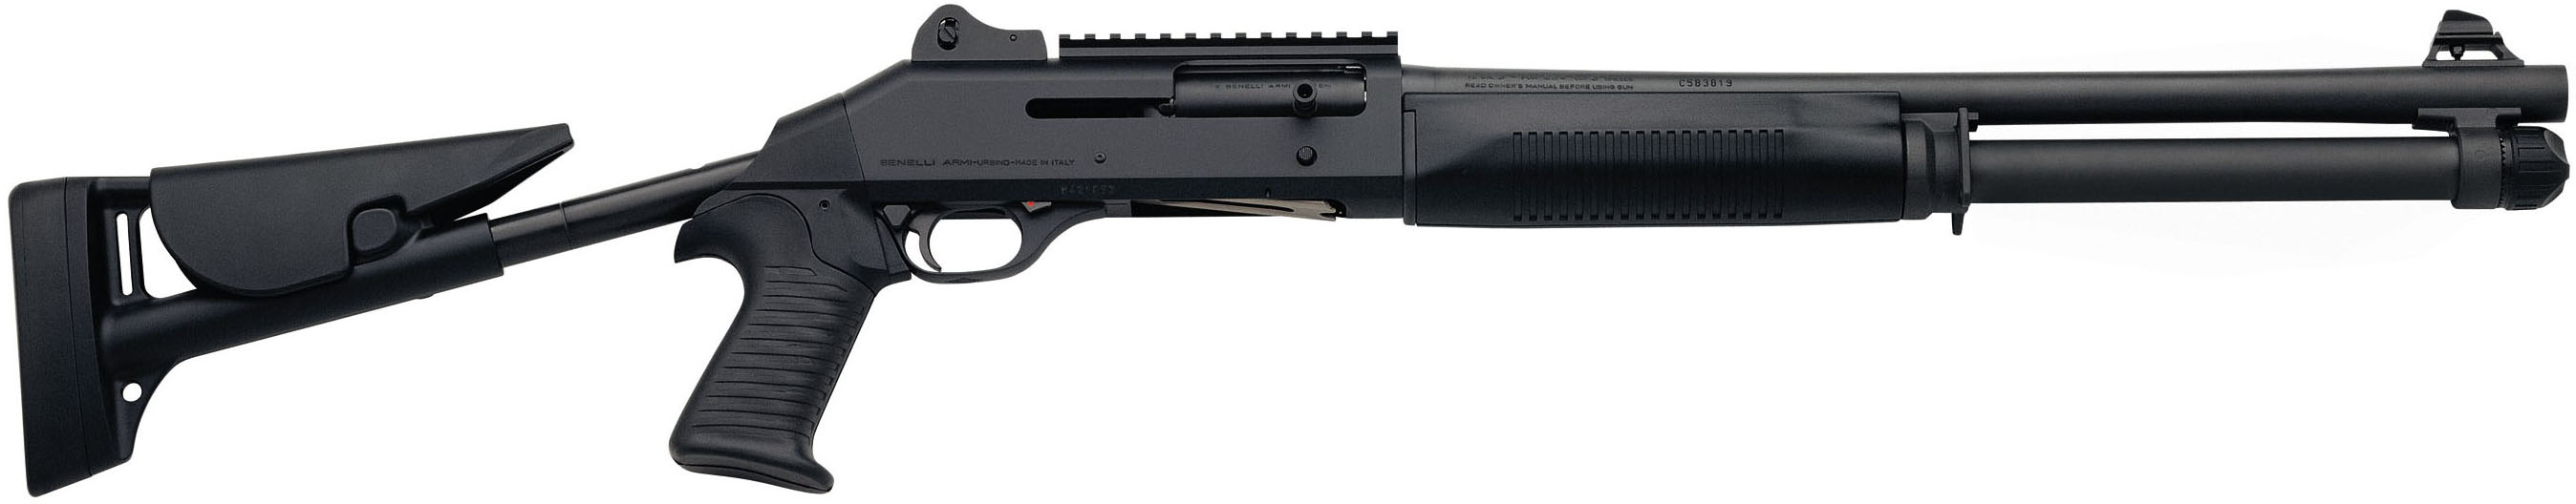 Benelli M4  M1014 Tactical